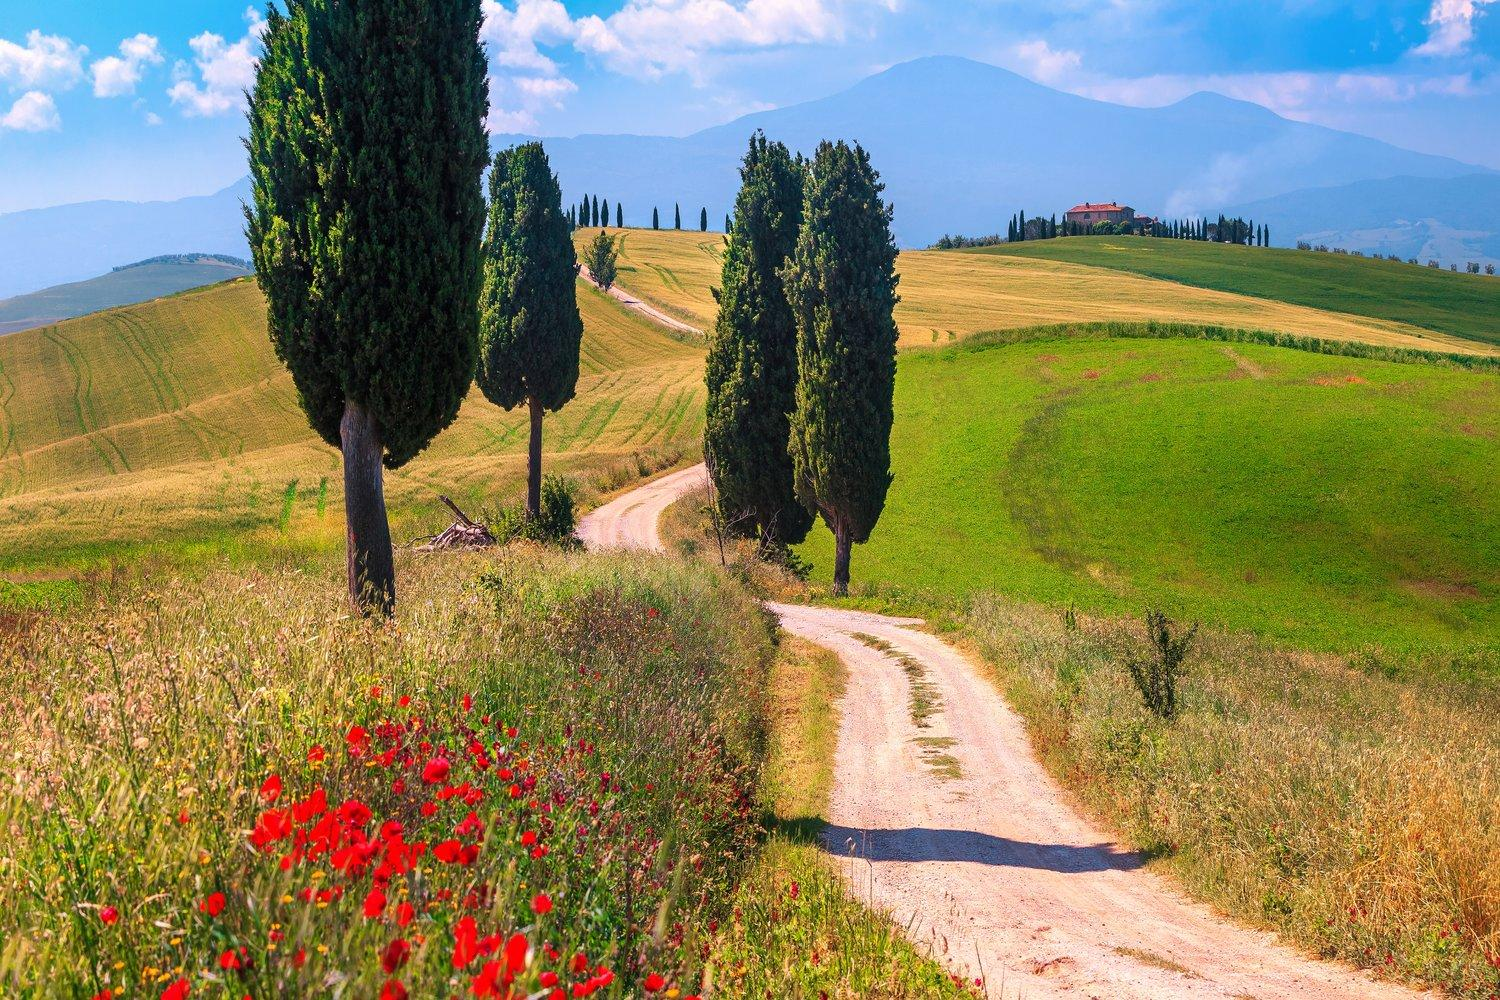 Wander through classic Tuscan landscapes of rolling hills, vineyards and olive groves